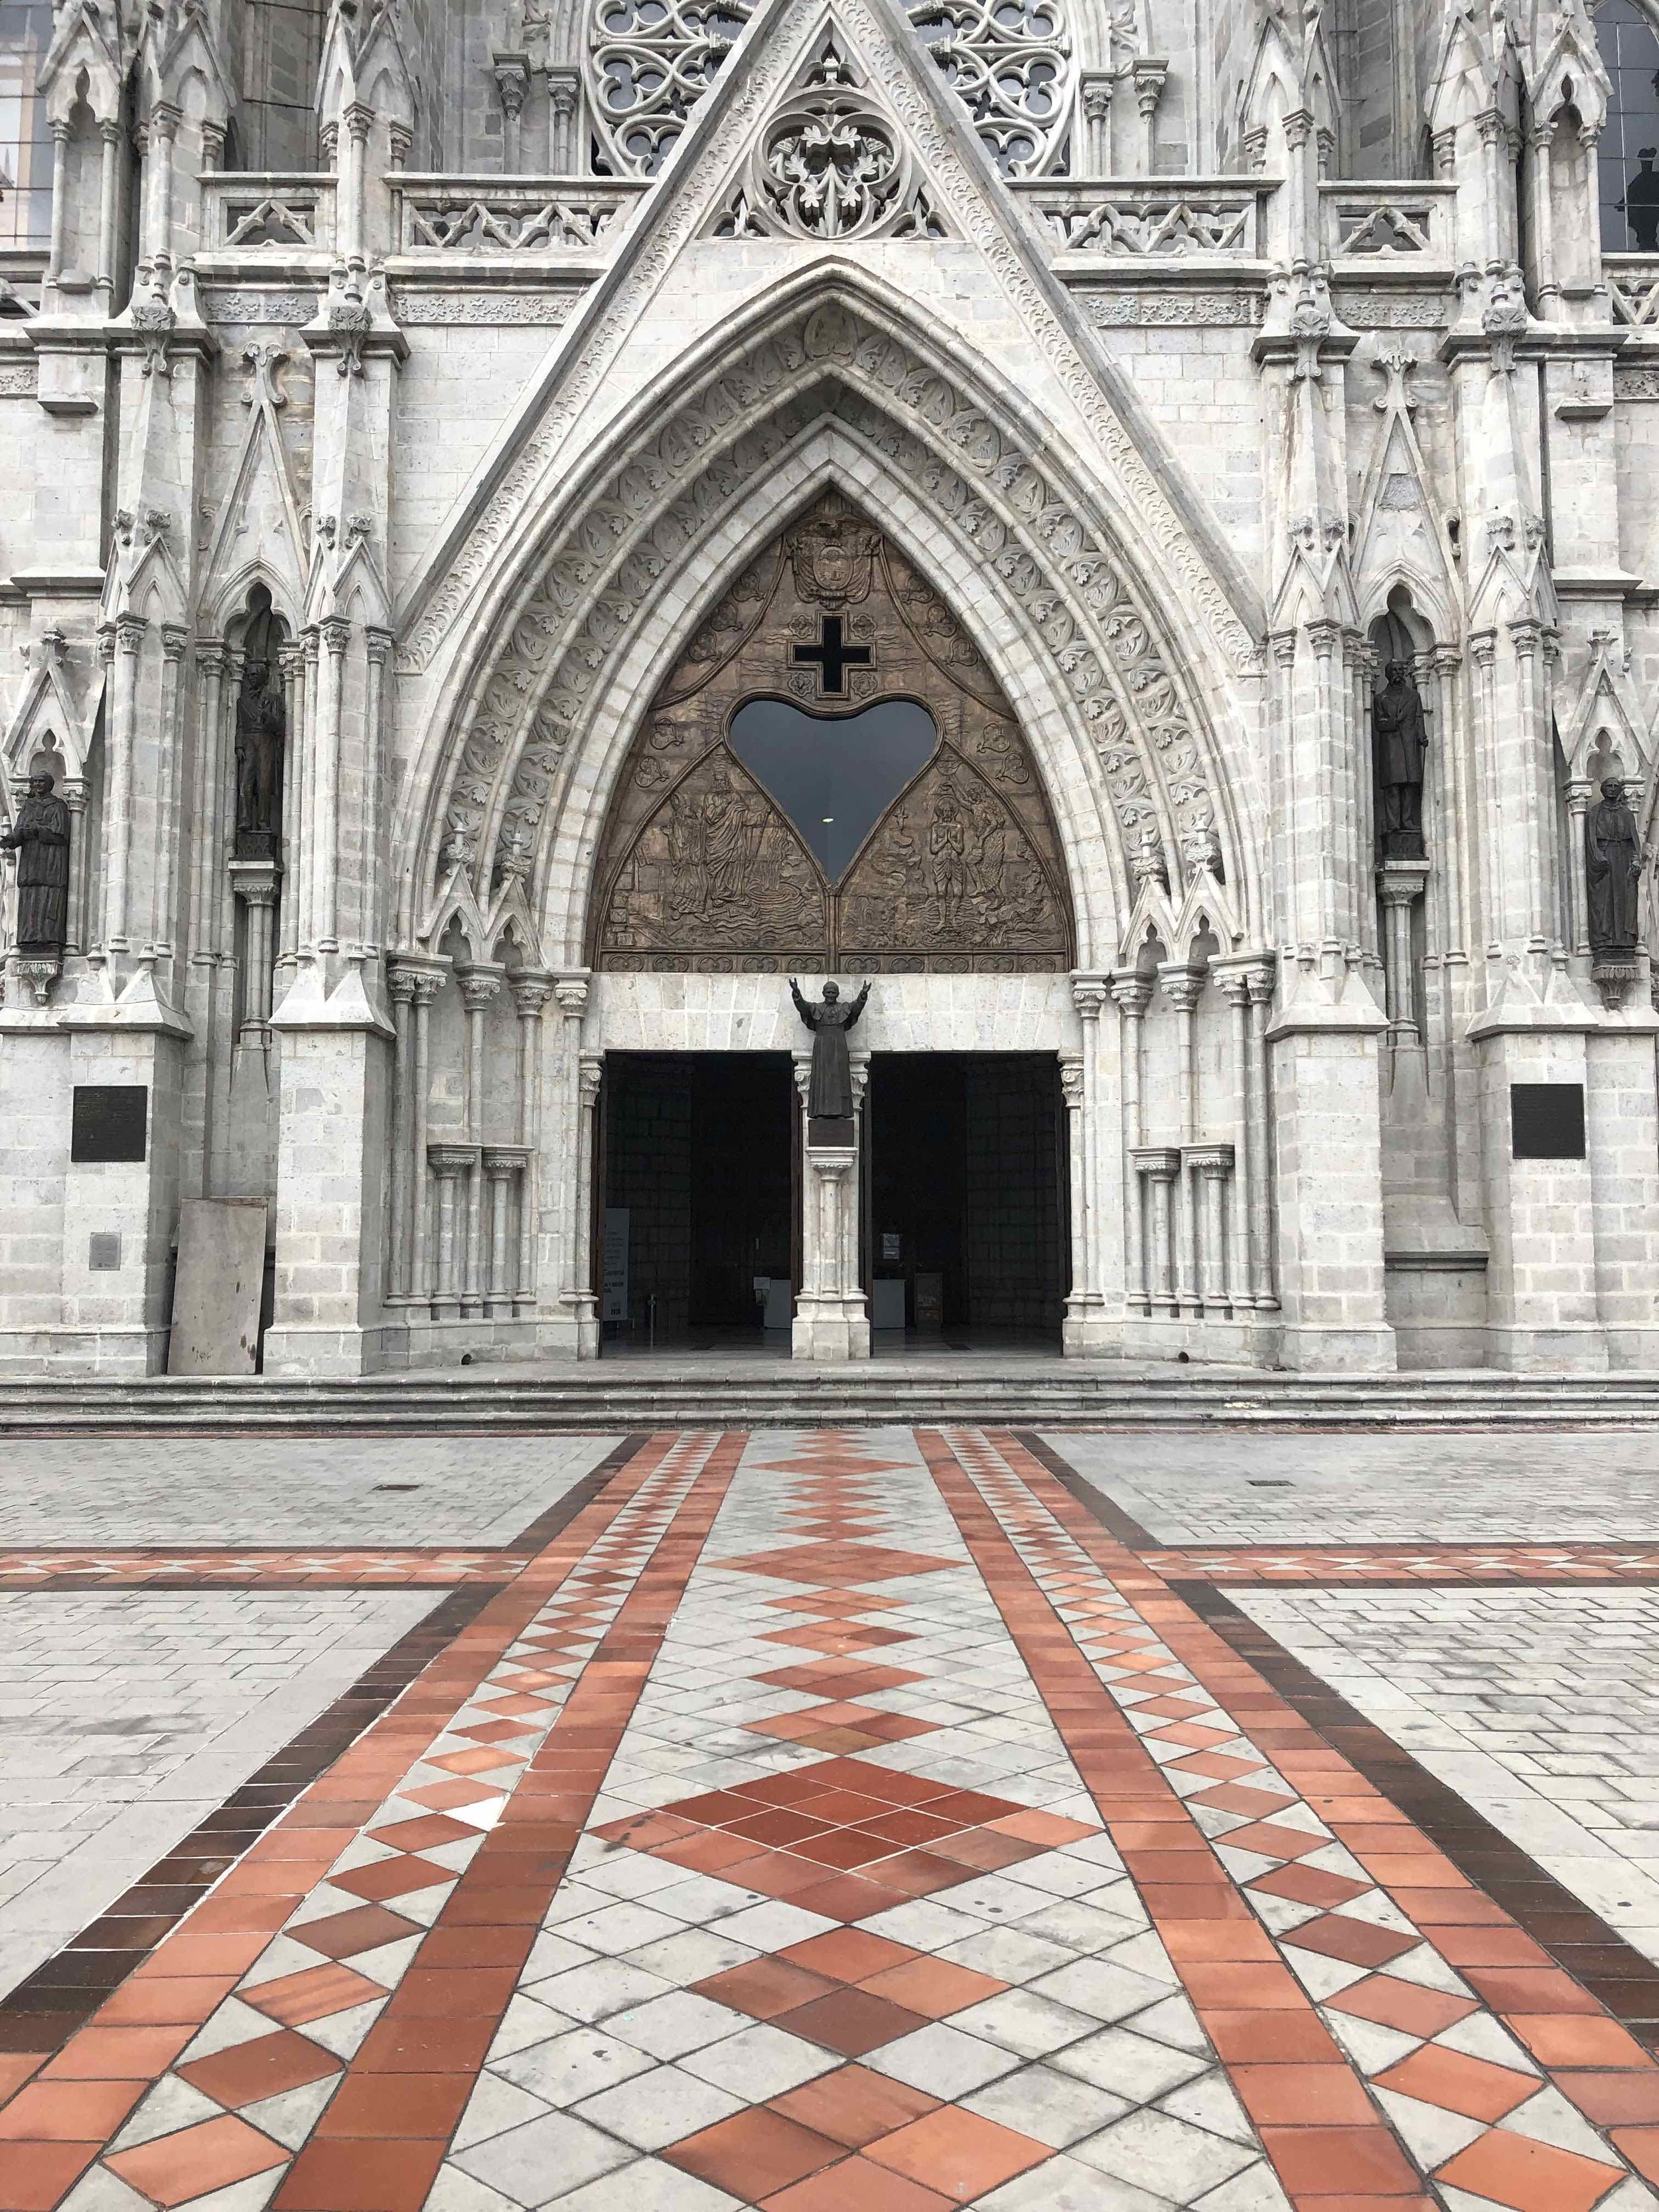 This entrance to the cathedral - no filters used!